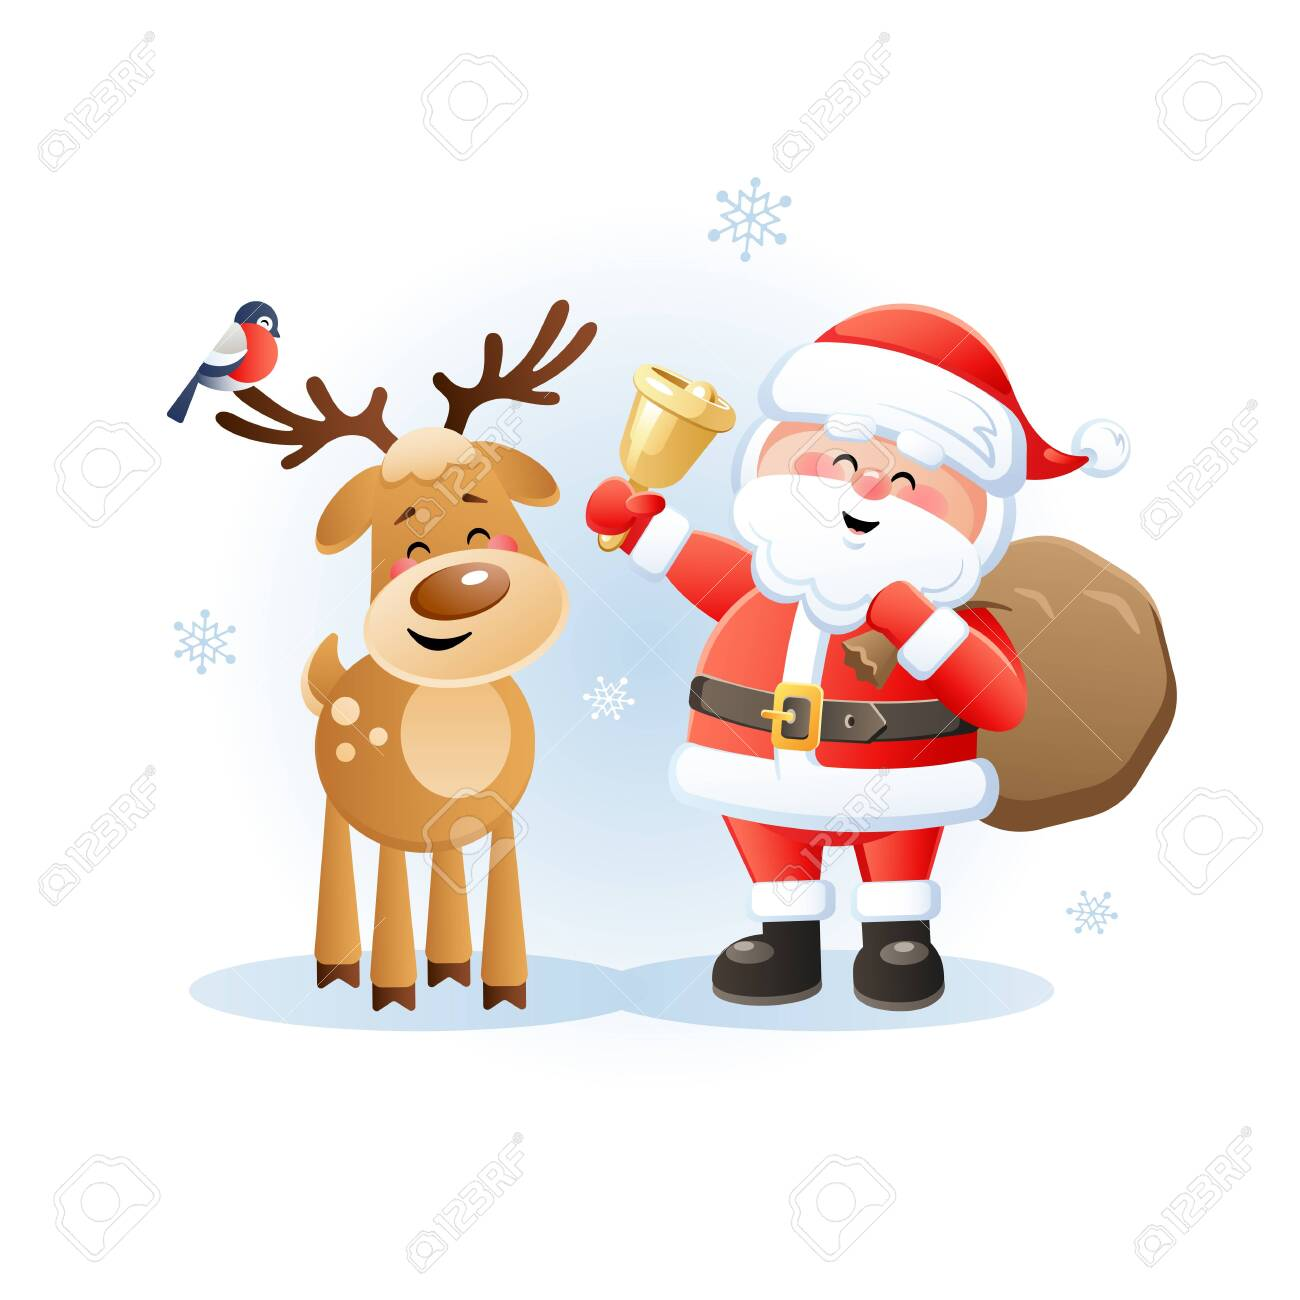 Cute Christmas Pictures.Merry Santa Claus With Reindeer And Bullfinch Cute Christmas